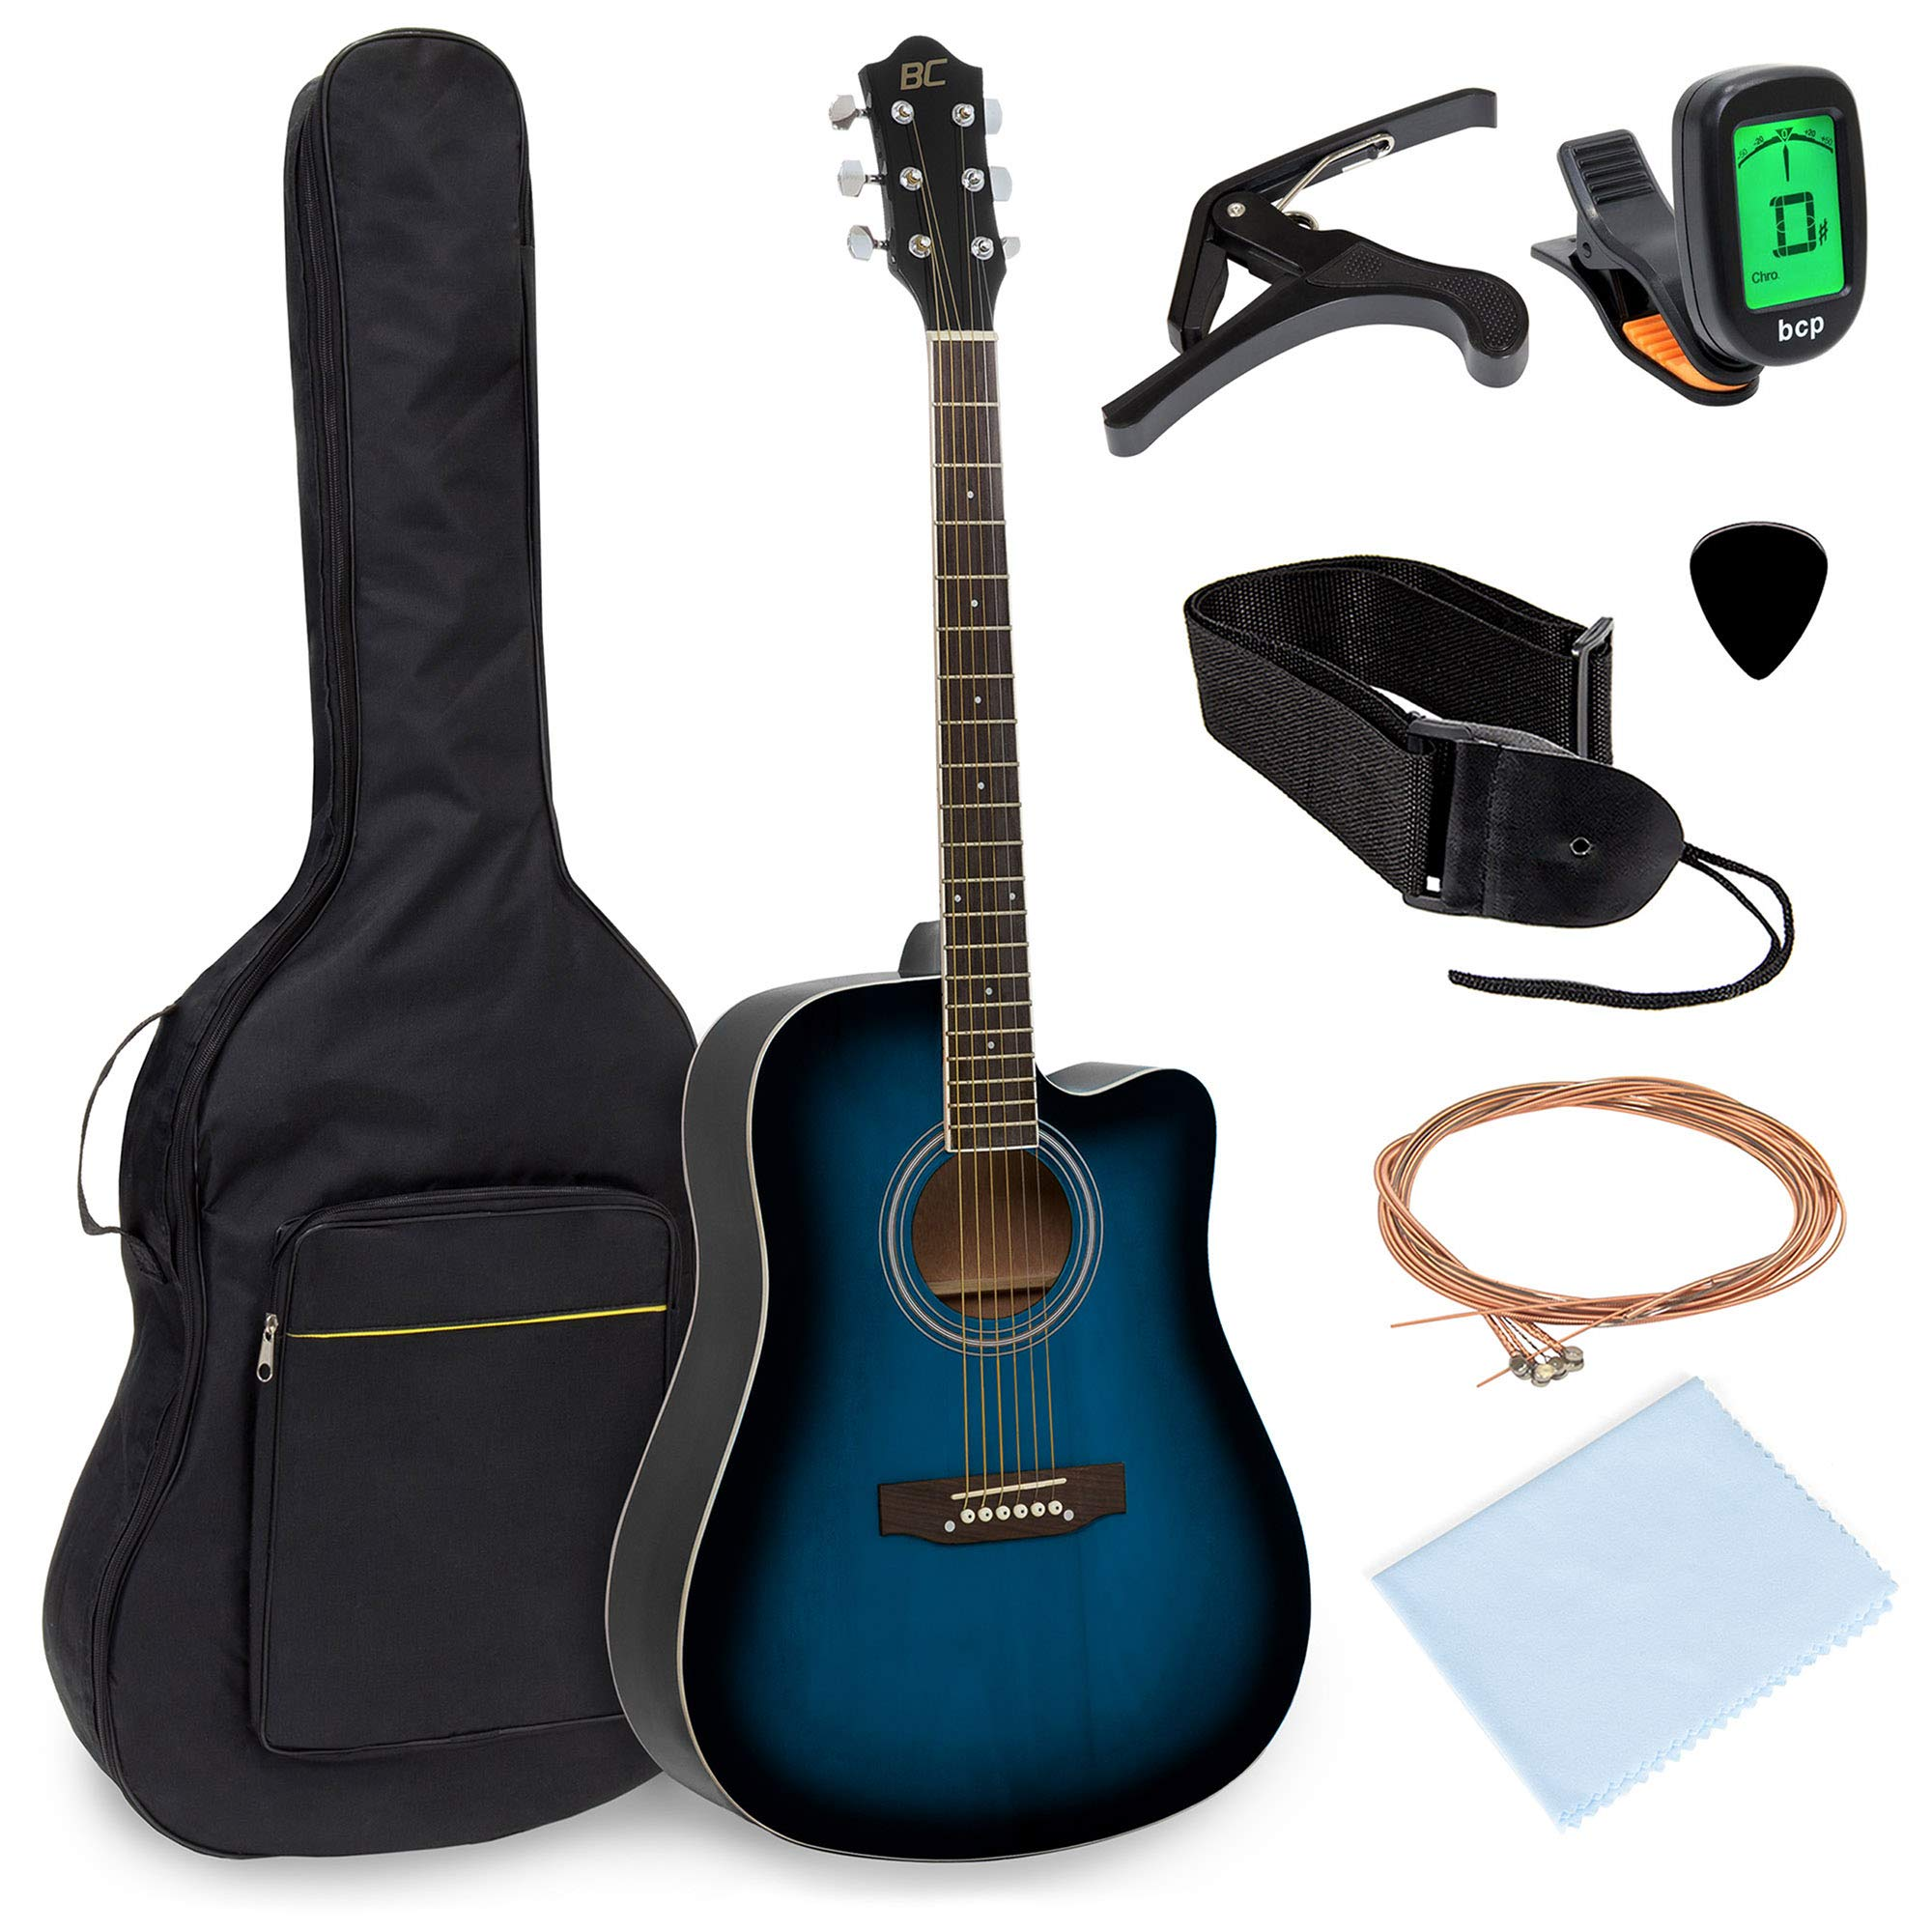 Best Choice Products 41in Full Size Beginner Acoustic Cutaway Guitar Set w/Case, Strap, Capo, Strings, Tuner - Blue by Best Choice Products